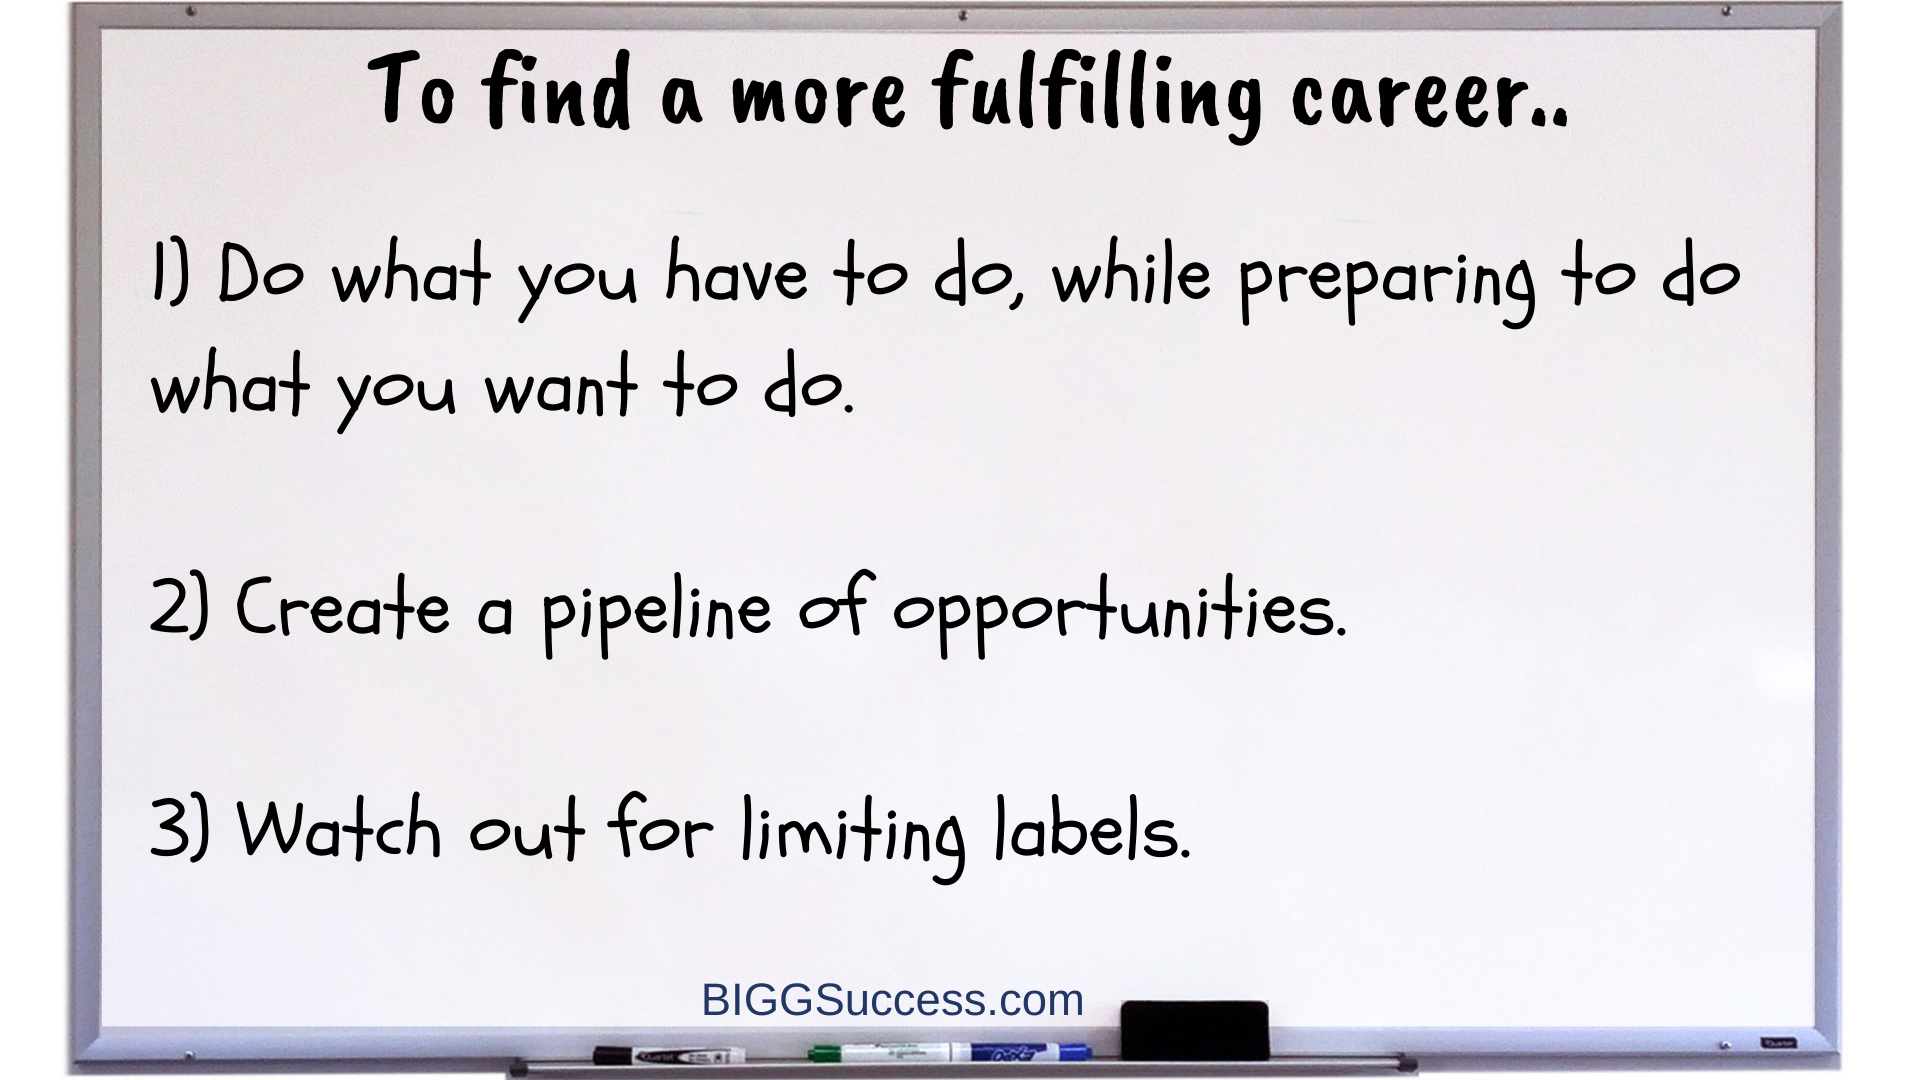 a more fulfilling career whiteboard